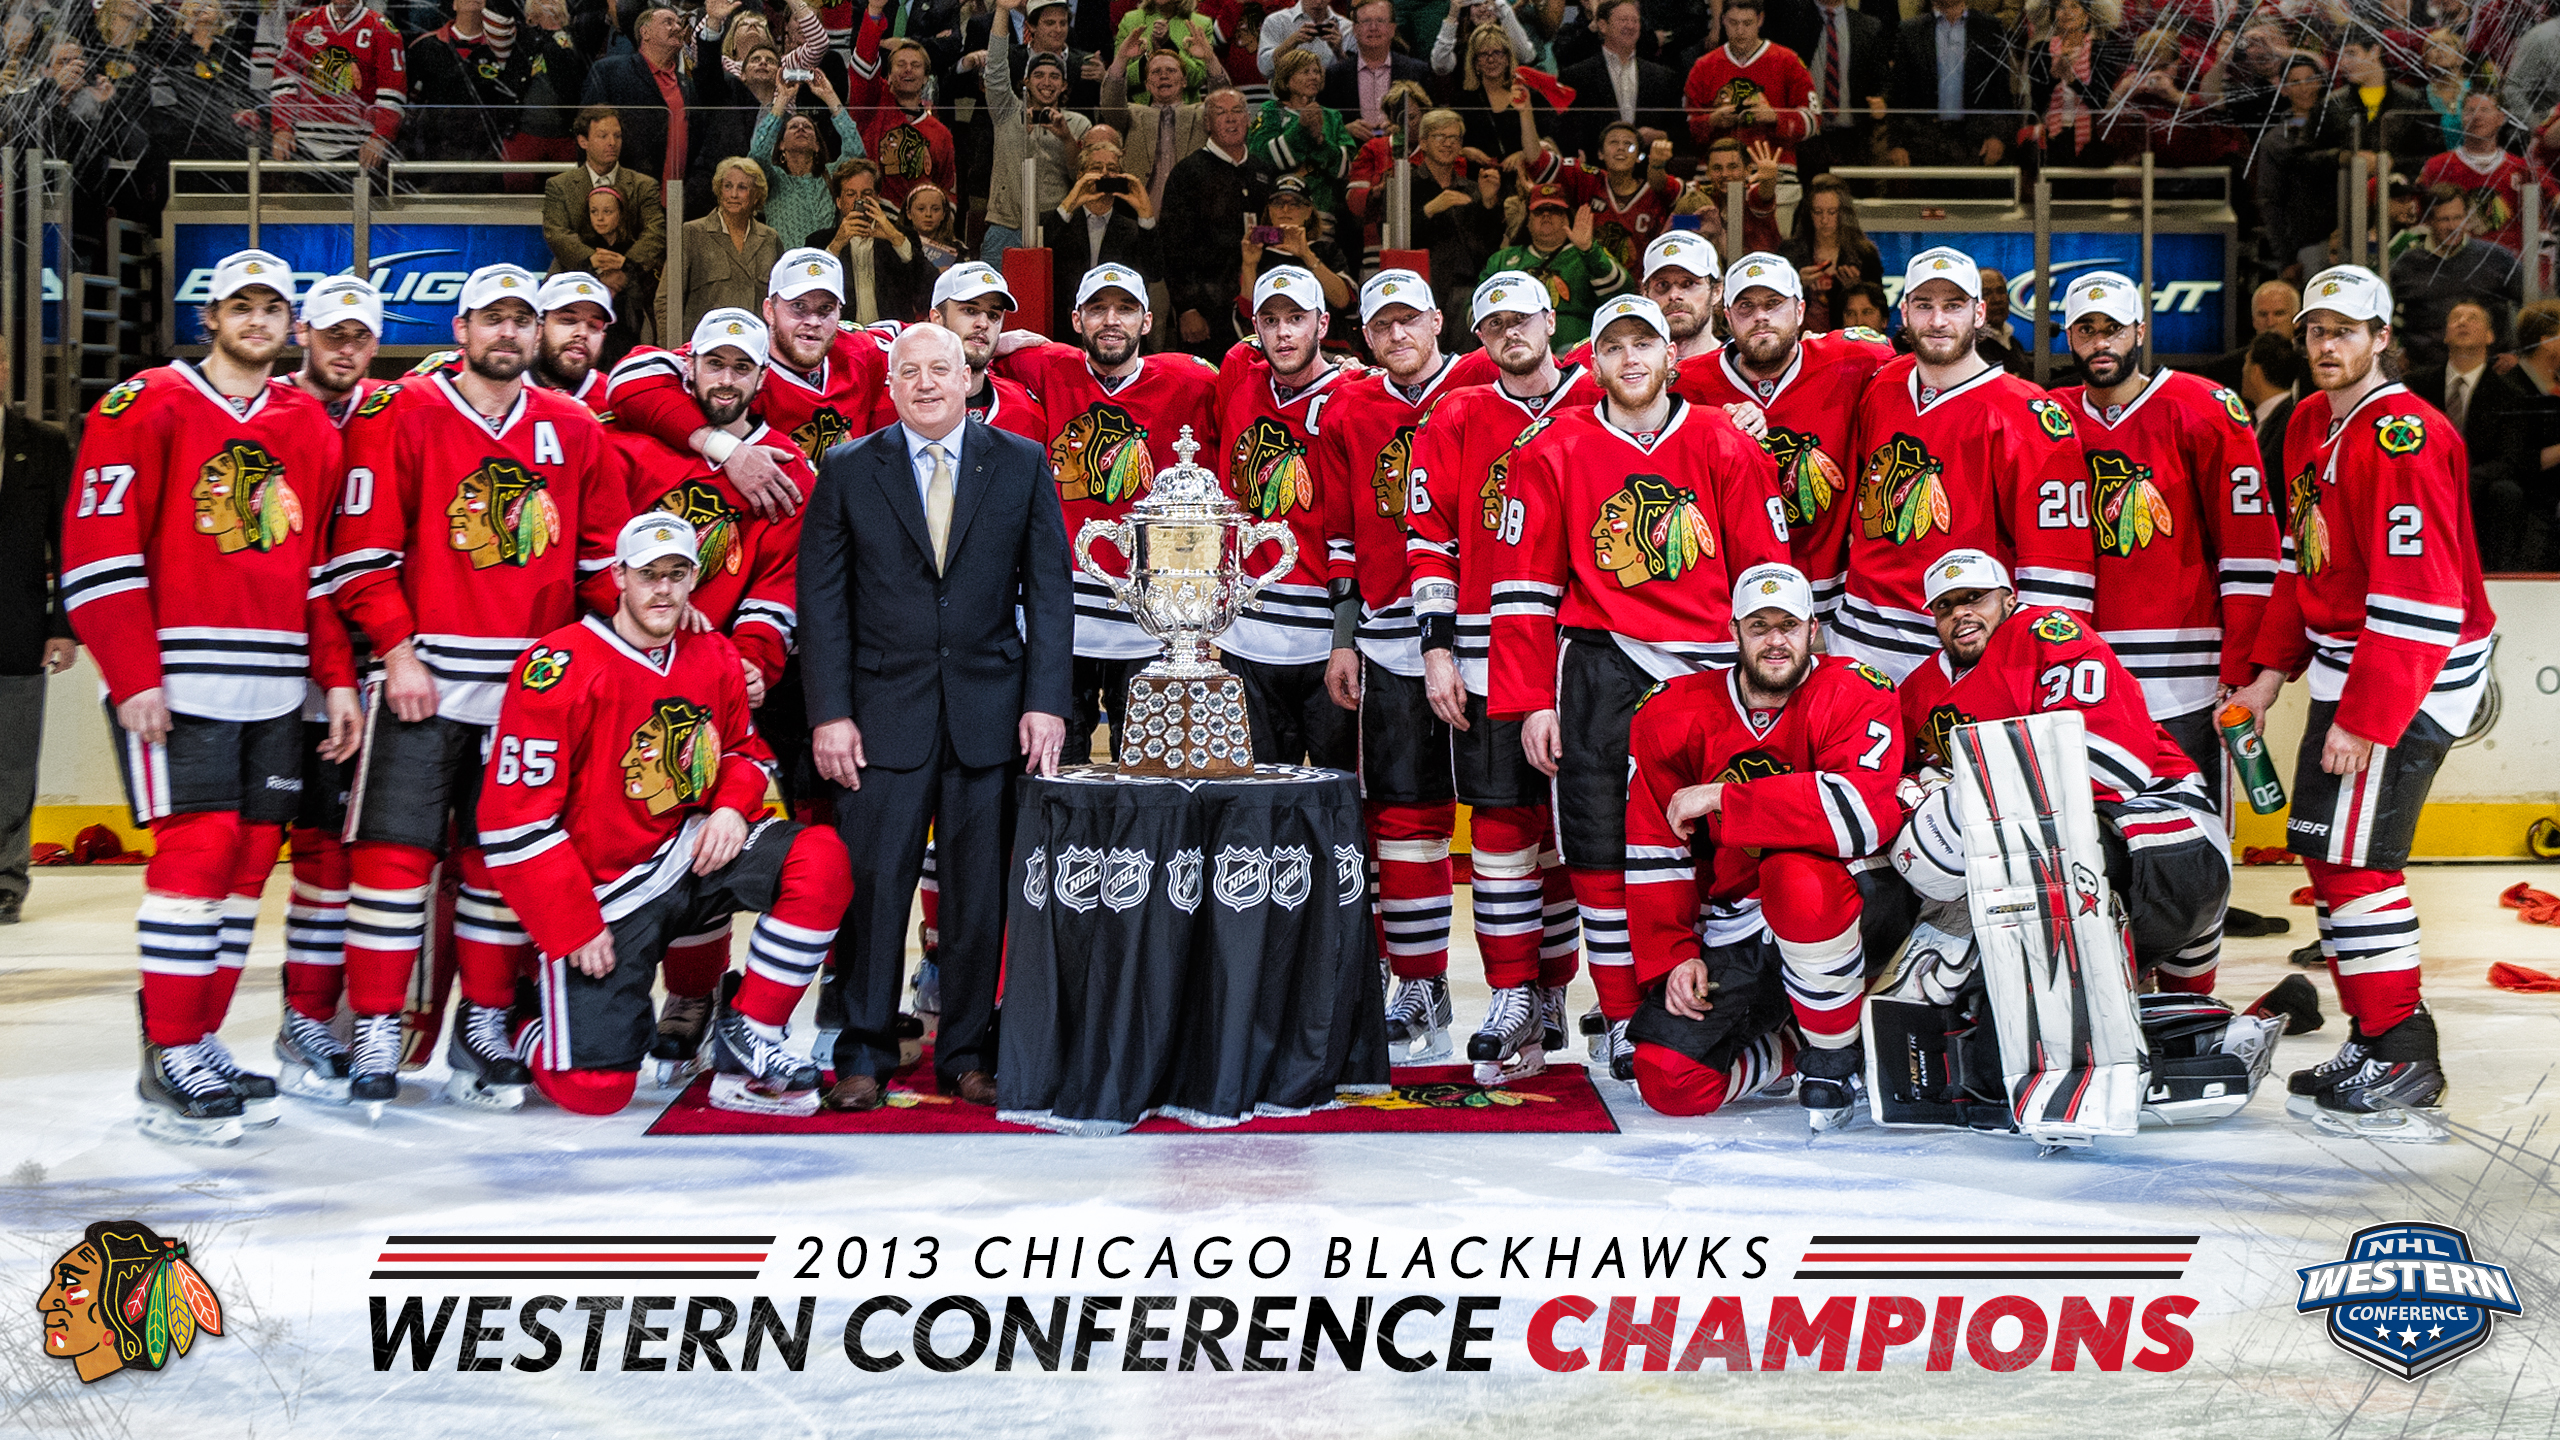 Stanley Cup Ring Chicago Blackhawks Wallpaper 2560x1440